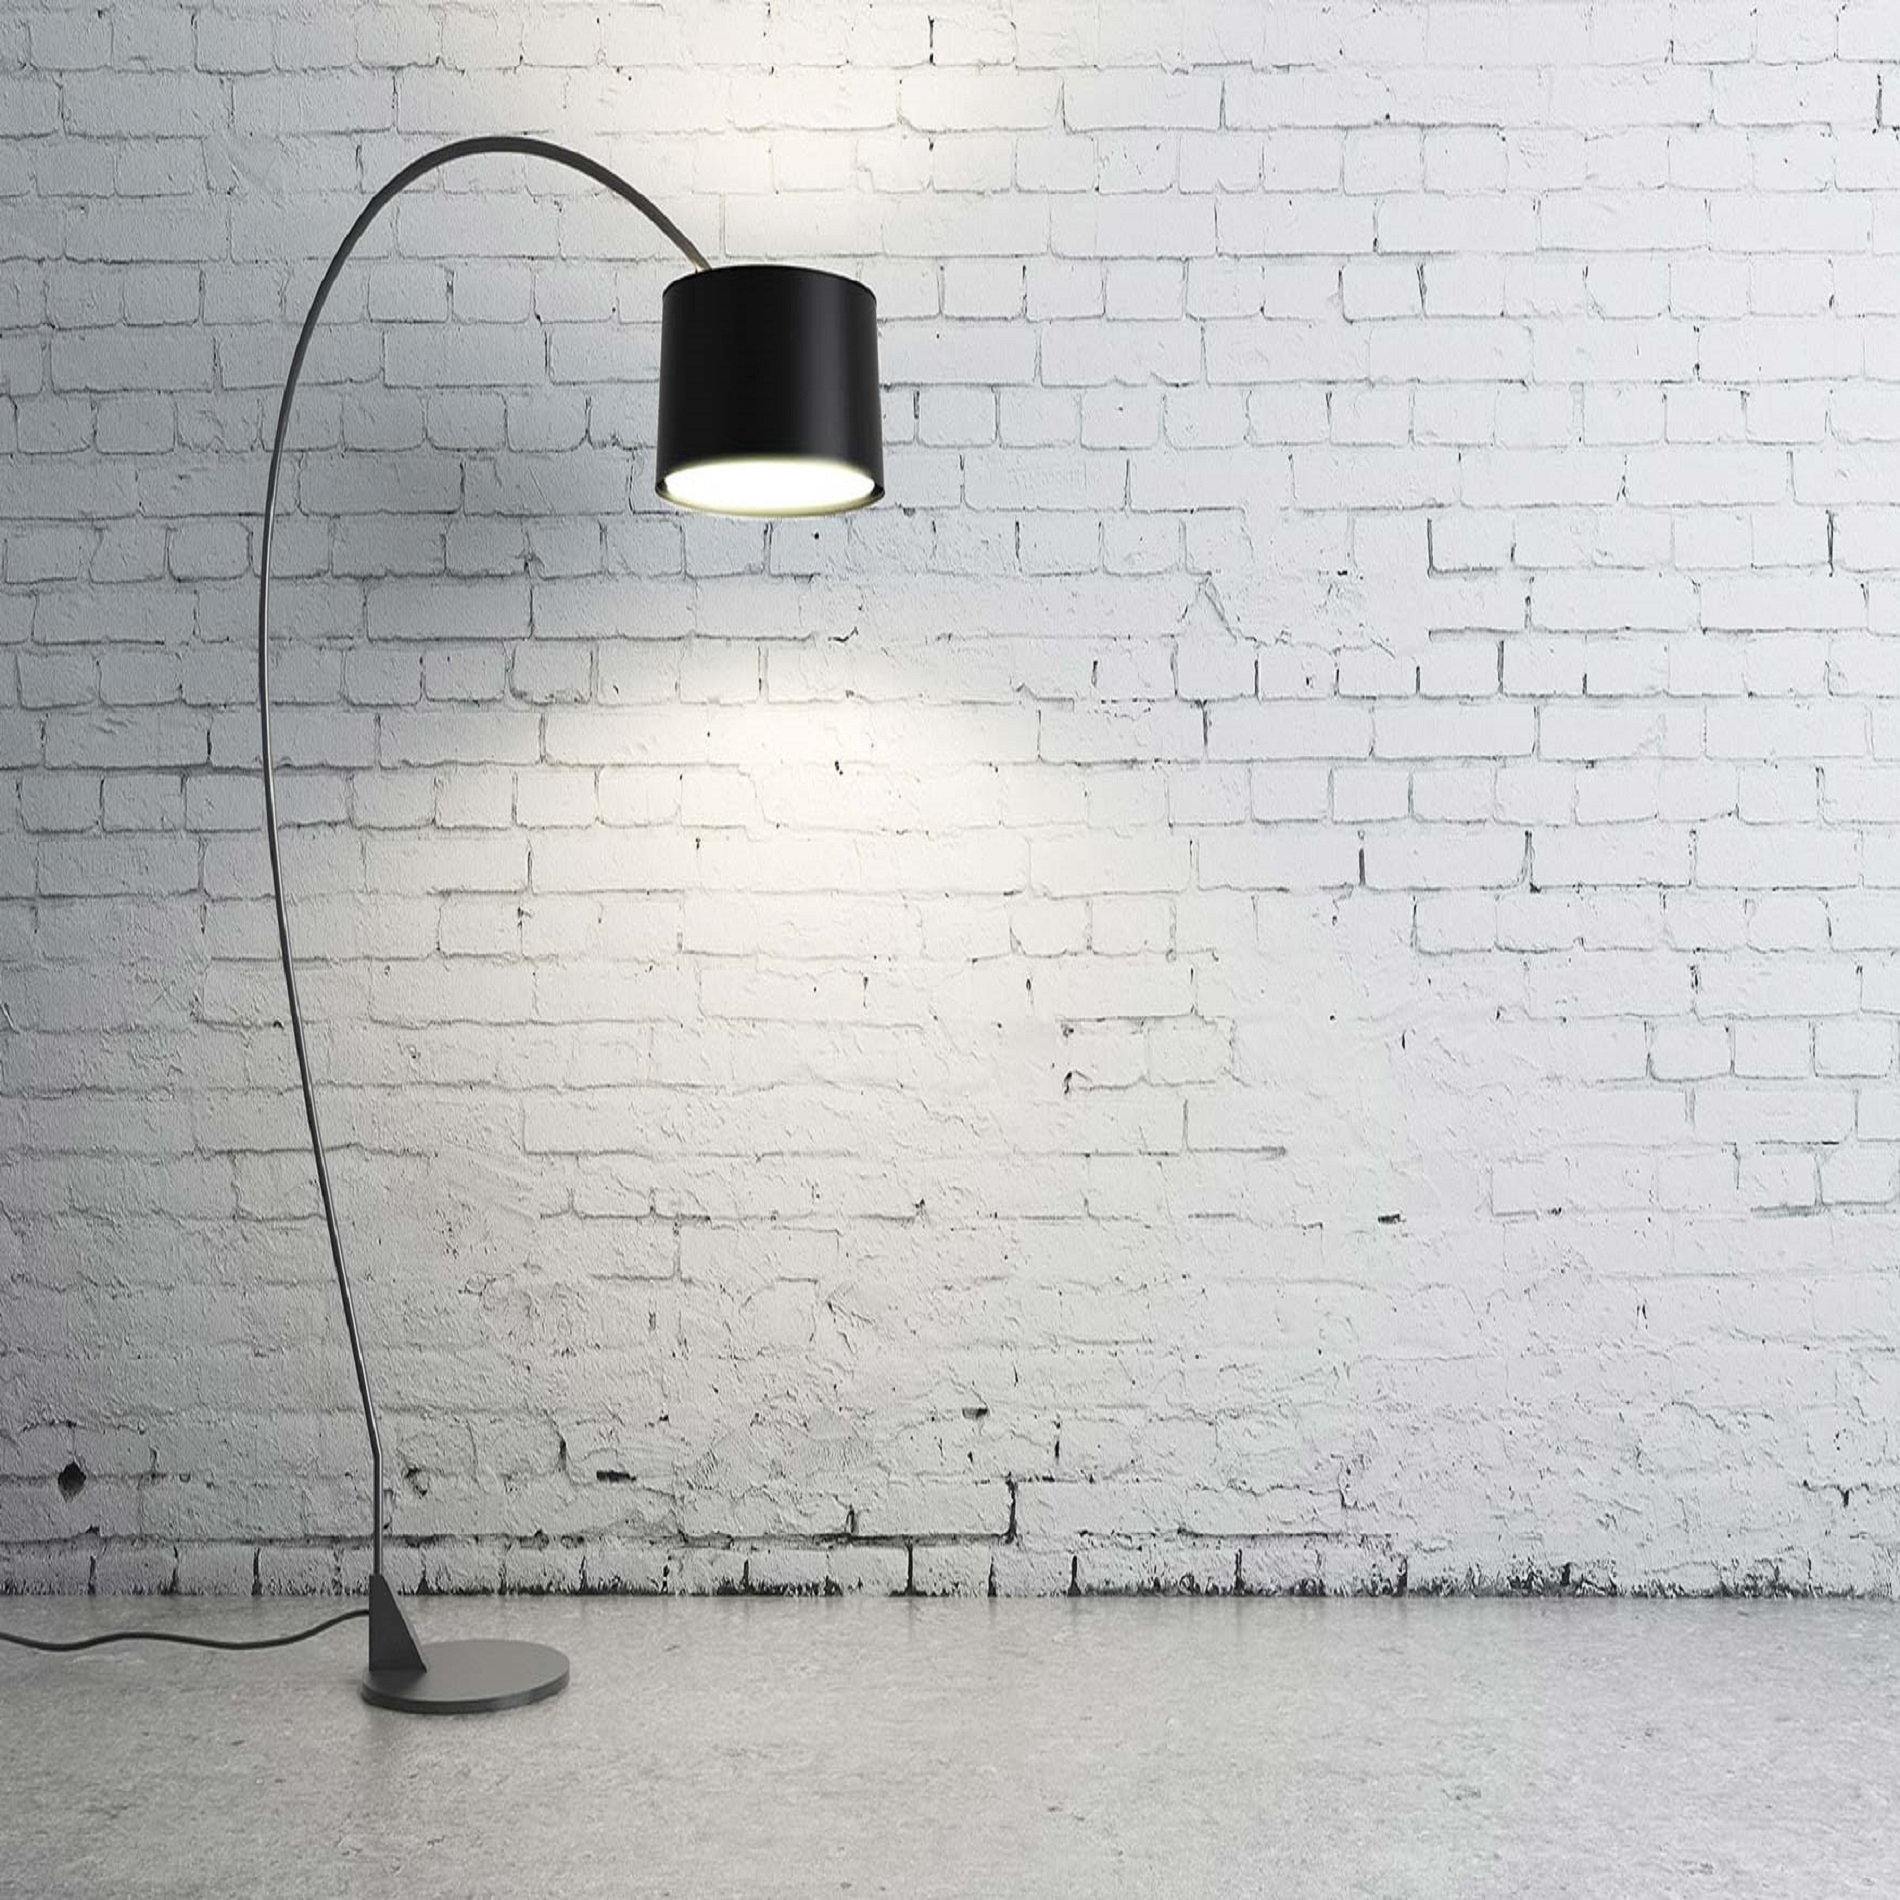 Turned on black torchiere lamp free stock photo for Wallpapering a wall